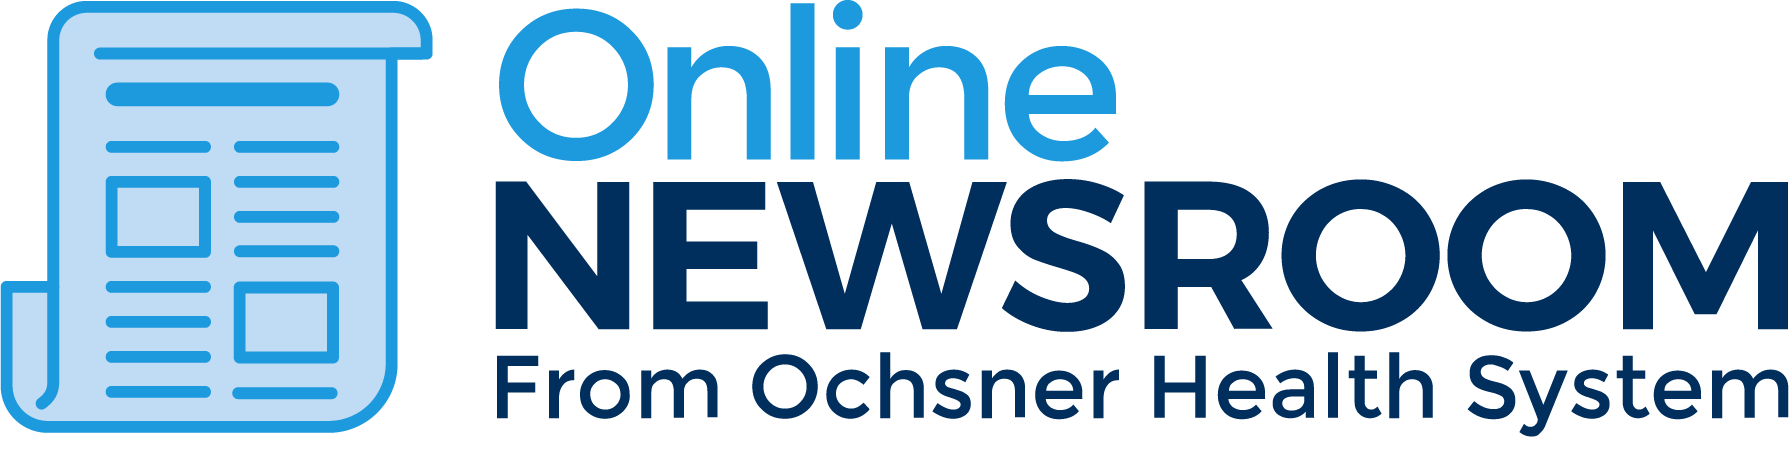 Ochsner News Room